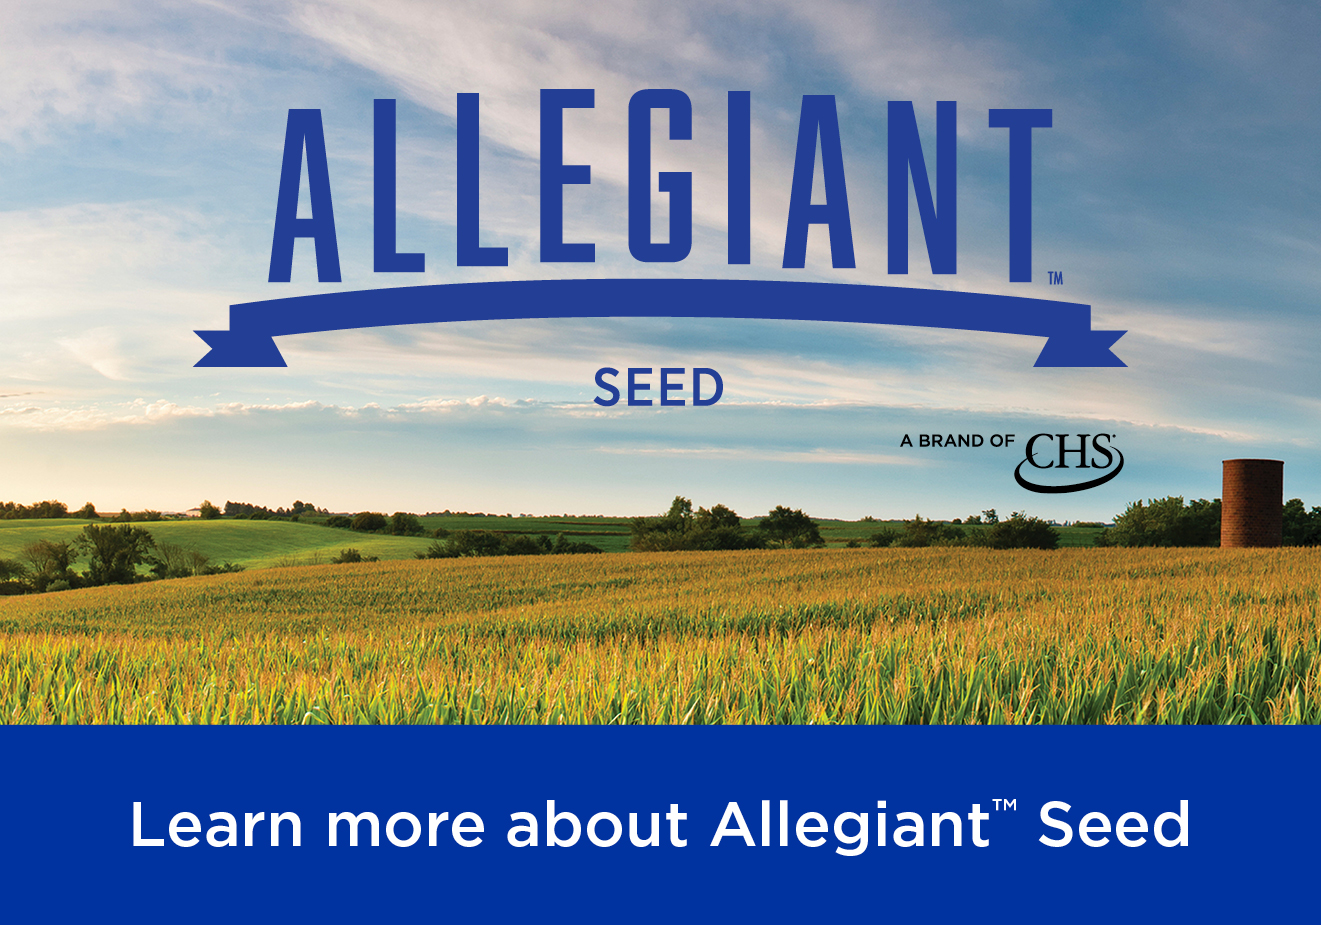 Allegiant Seed, a brand of CHS